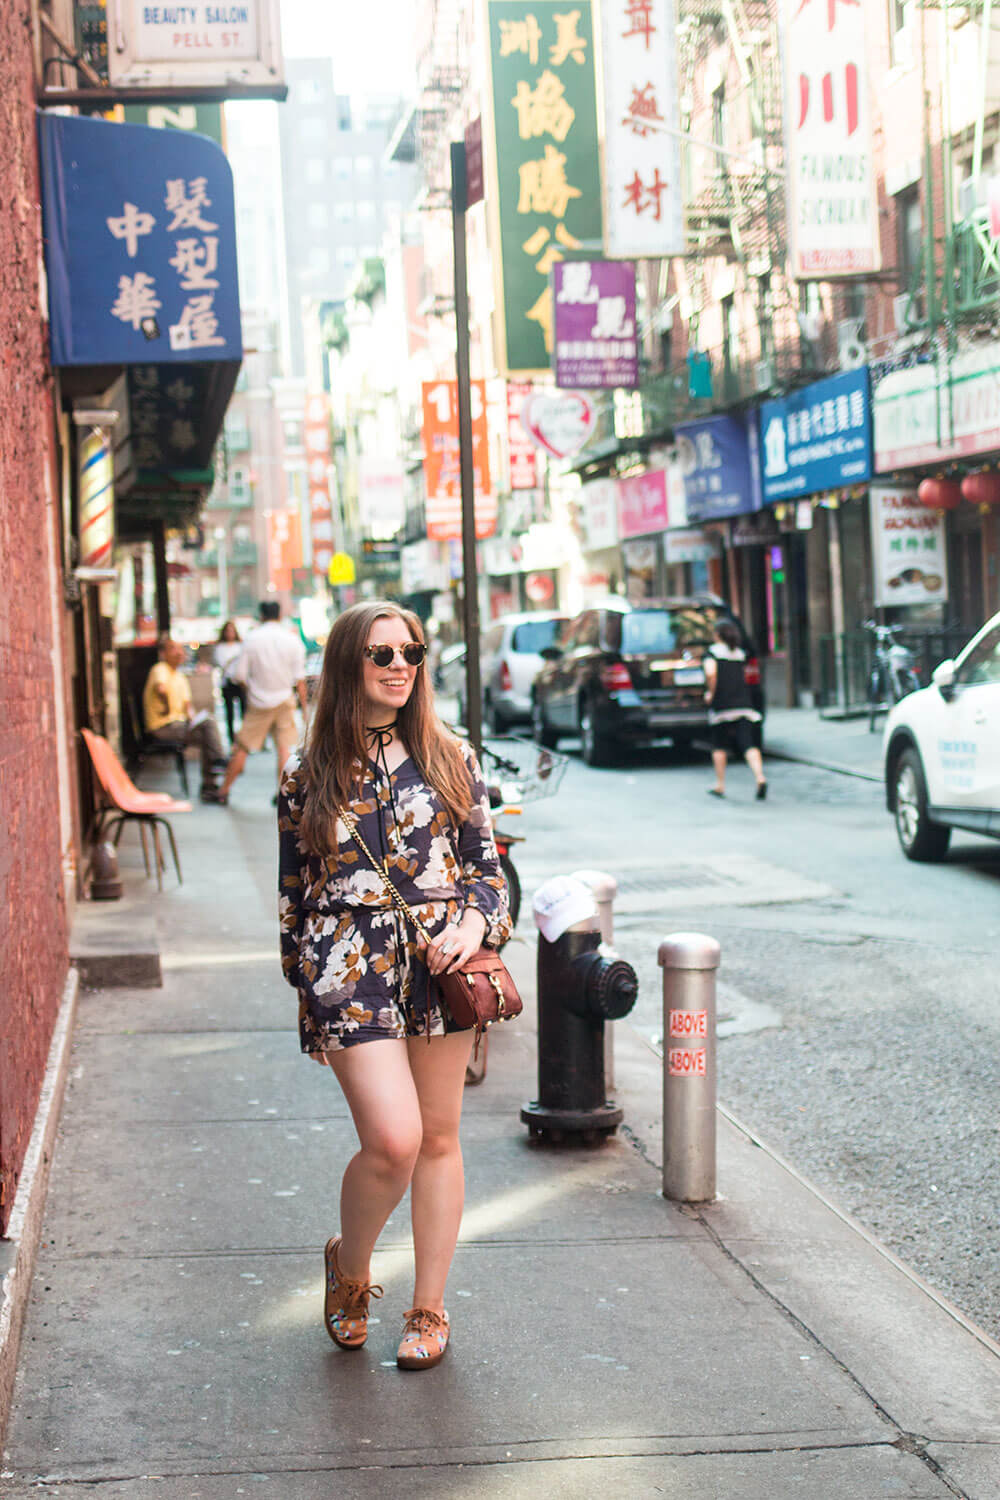 A Day in NYC: Chinatown Romper Outfit // Hello Rigby Seattle Fashion + Travel Blog